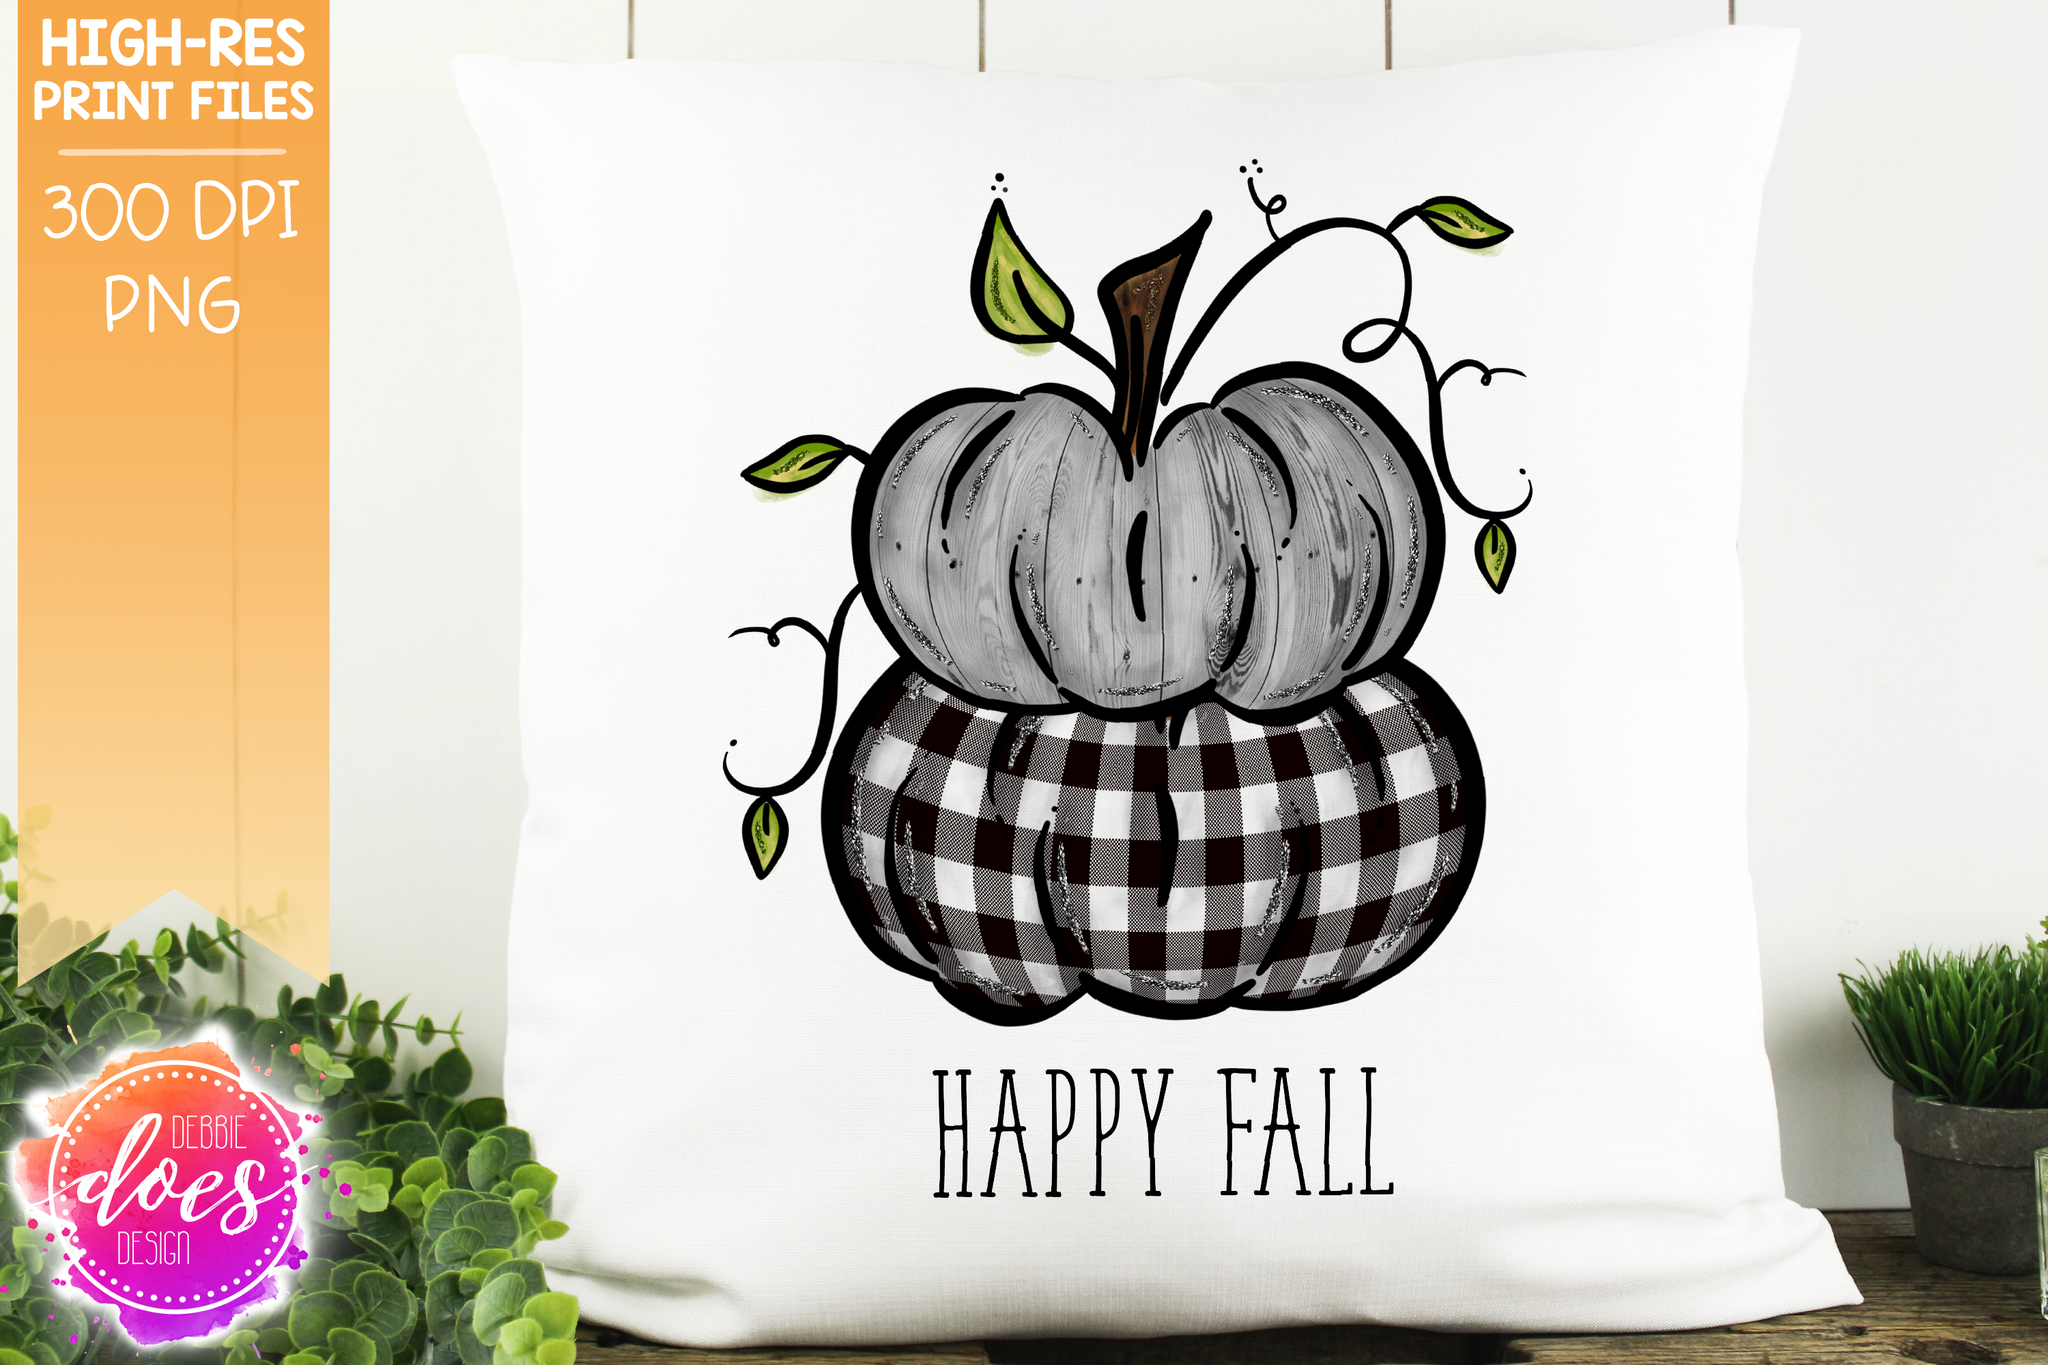 Happy Fall Skinny Stacked Pumpkins - Printable/Sublimation File